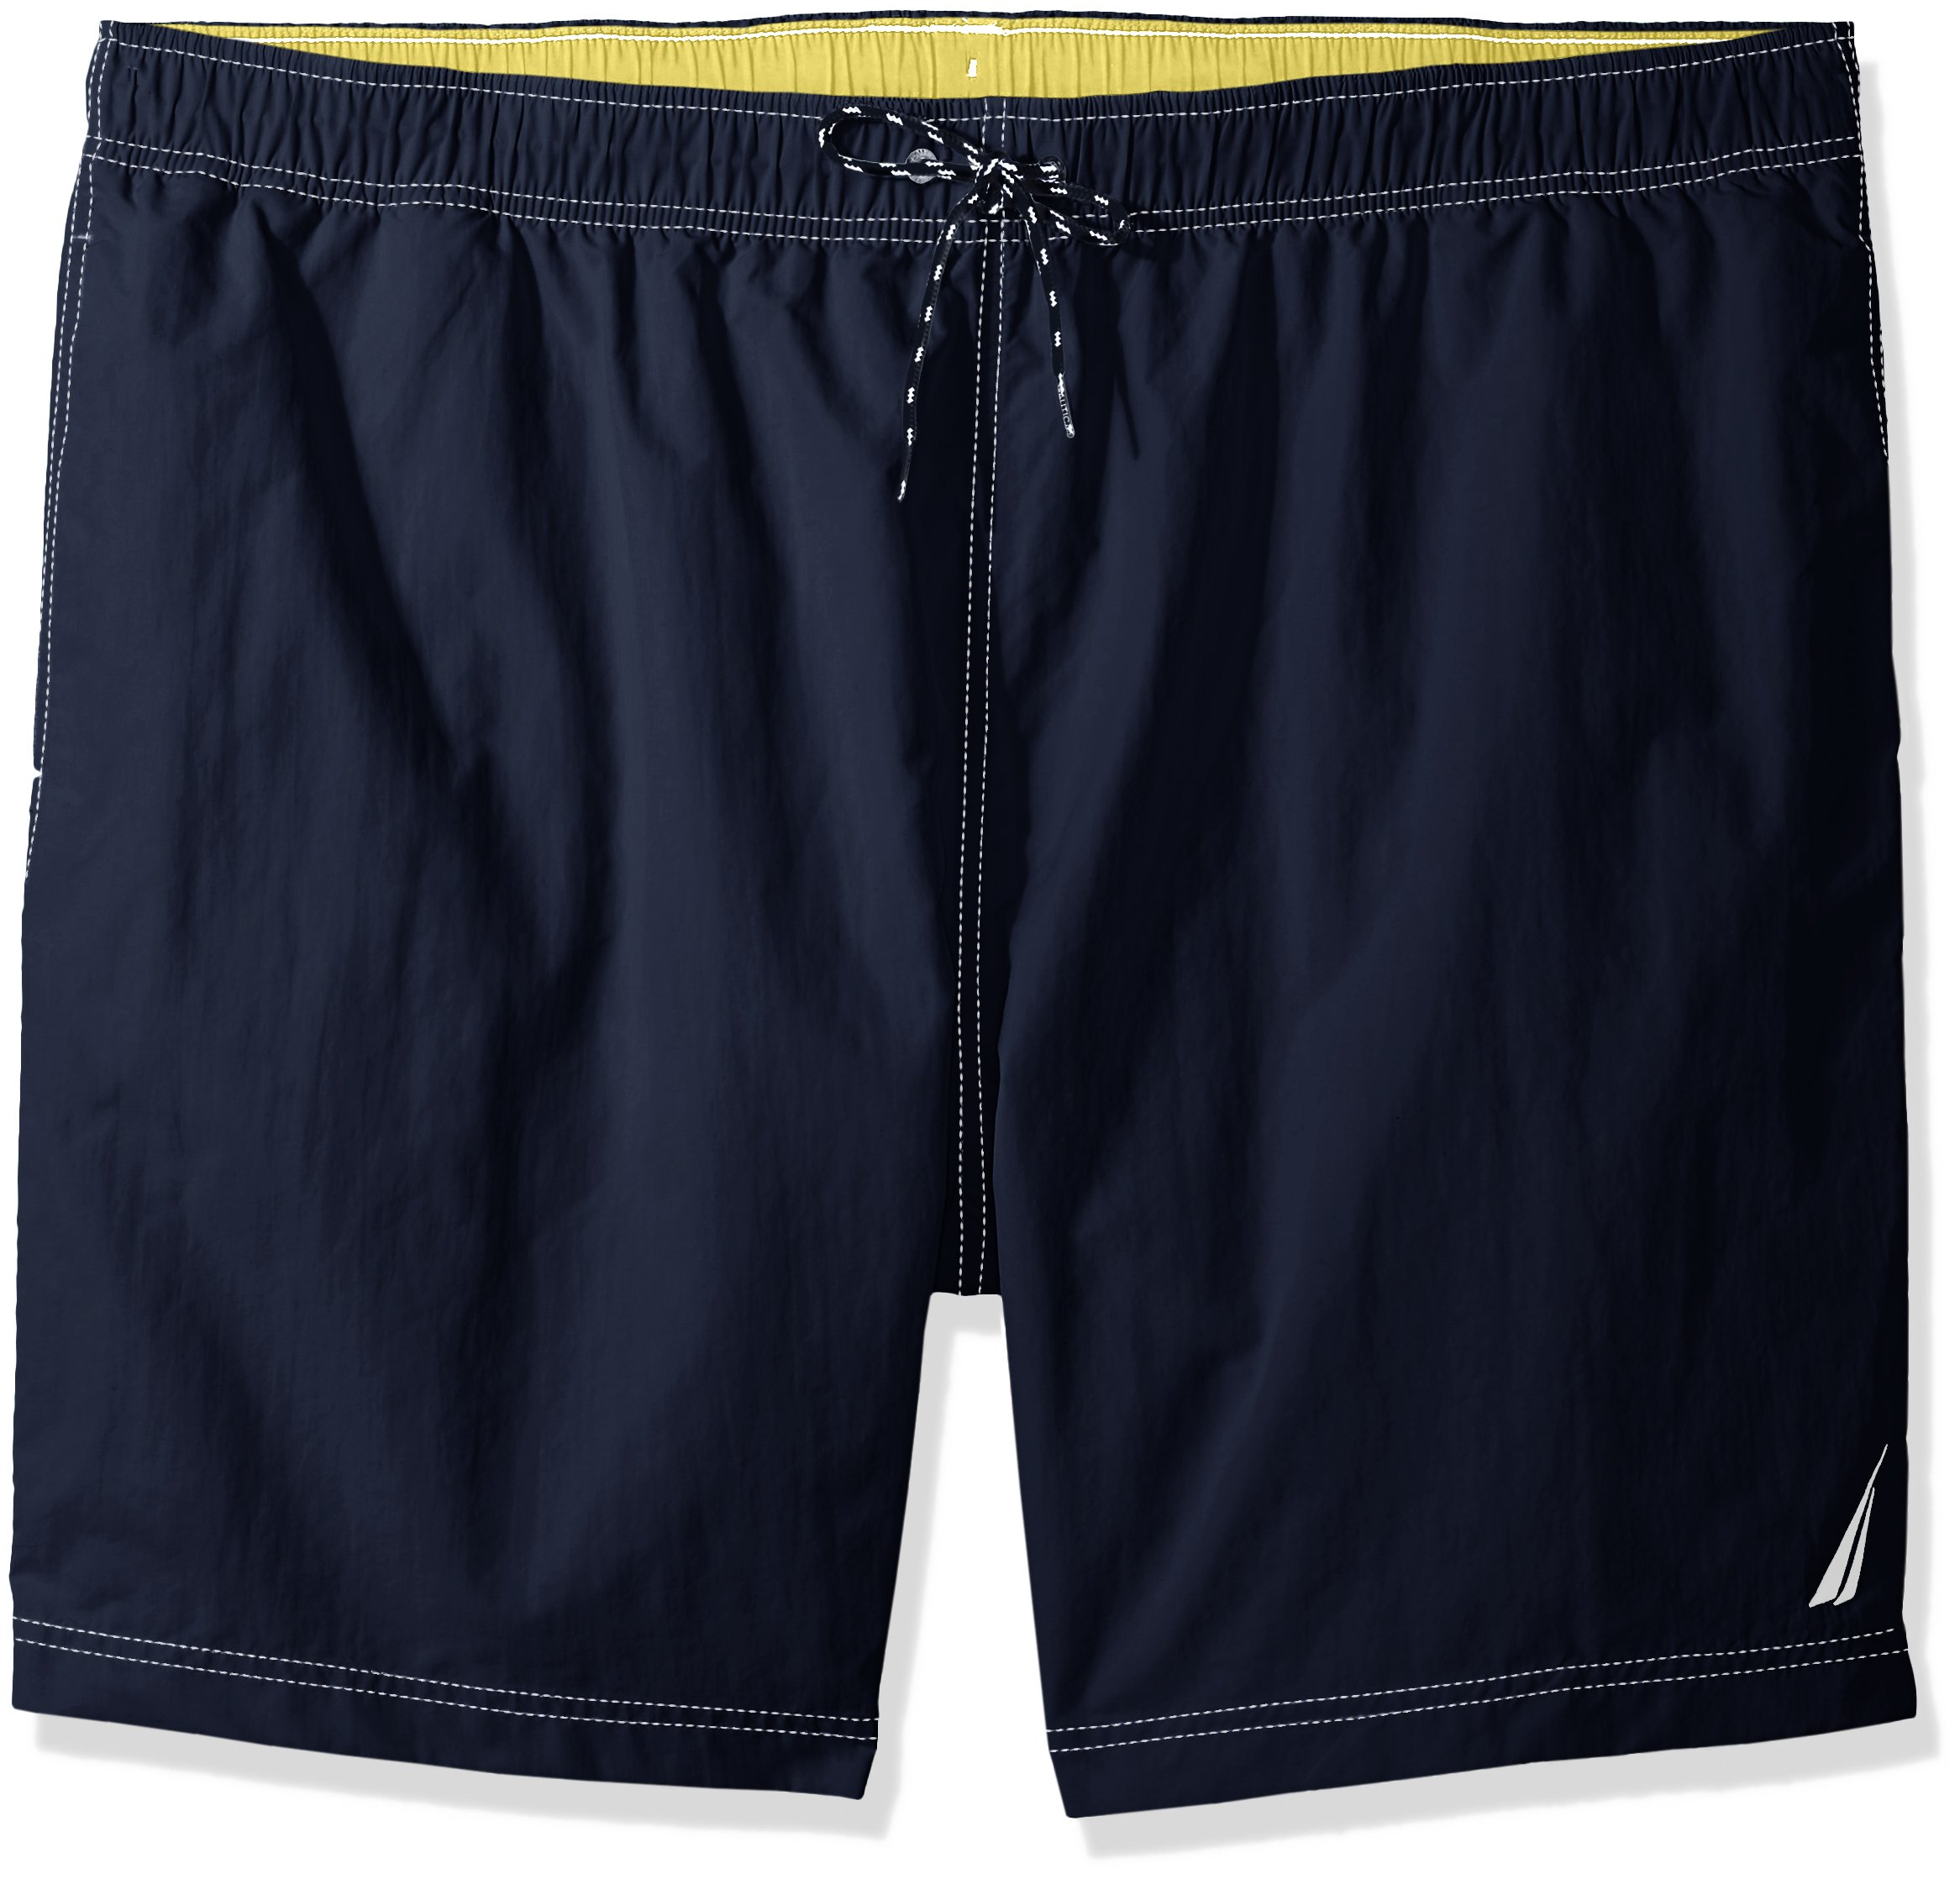 Nautica Men's Tall Solid Quick Dry Classic Logo Swim Trunk, Navy, 5X Big by Nautica